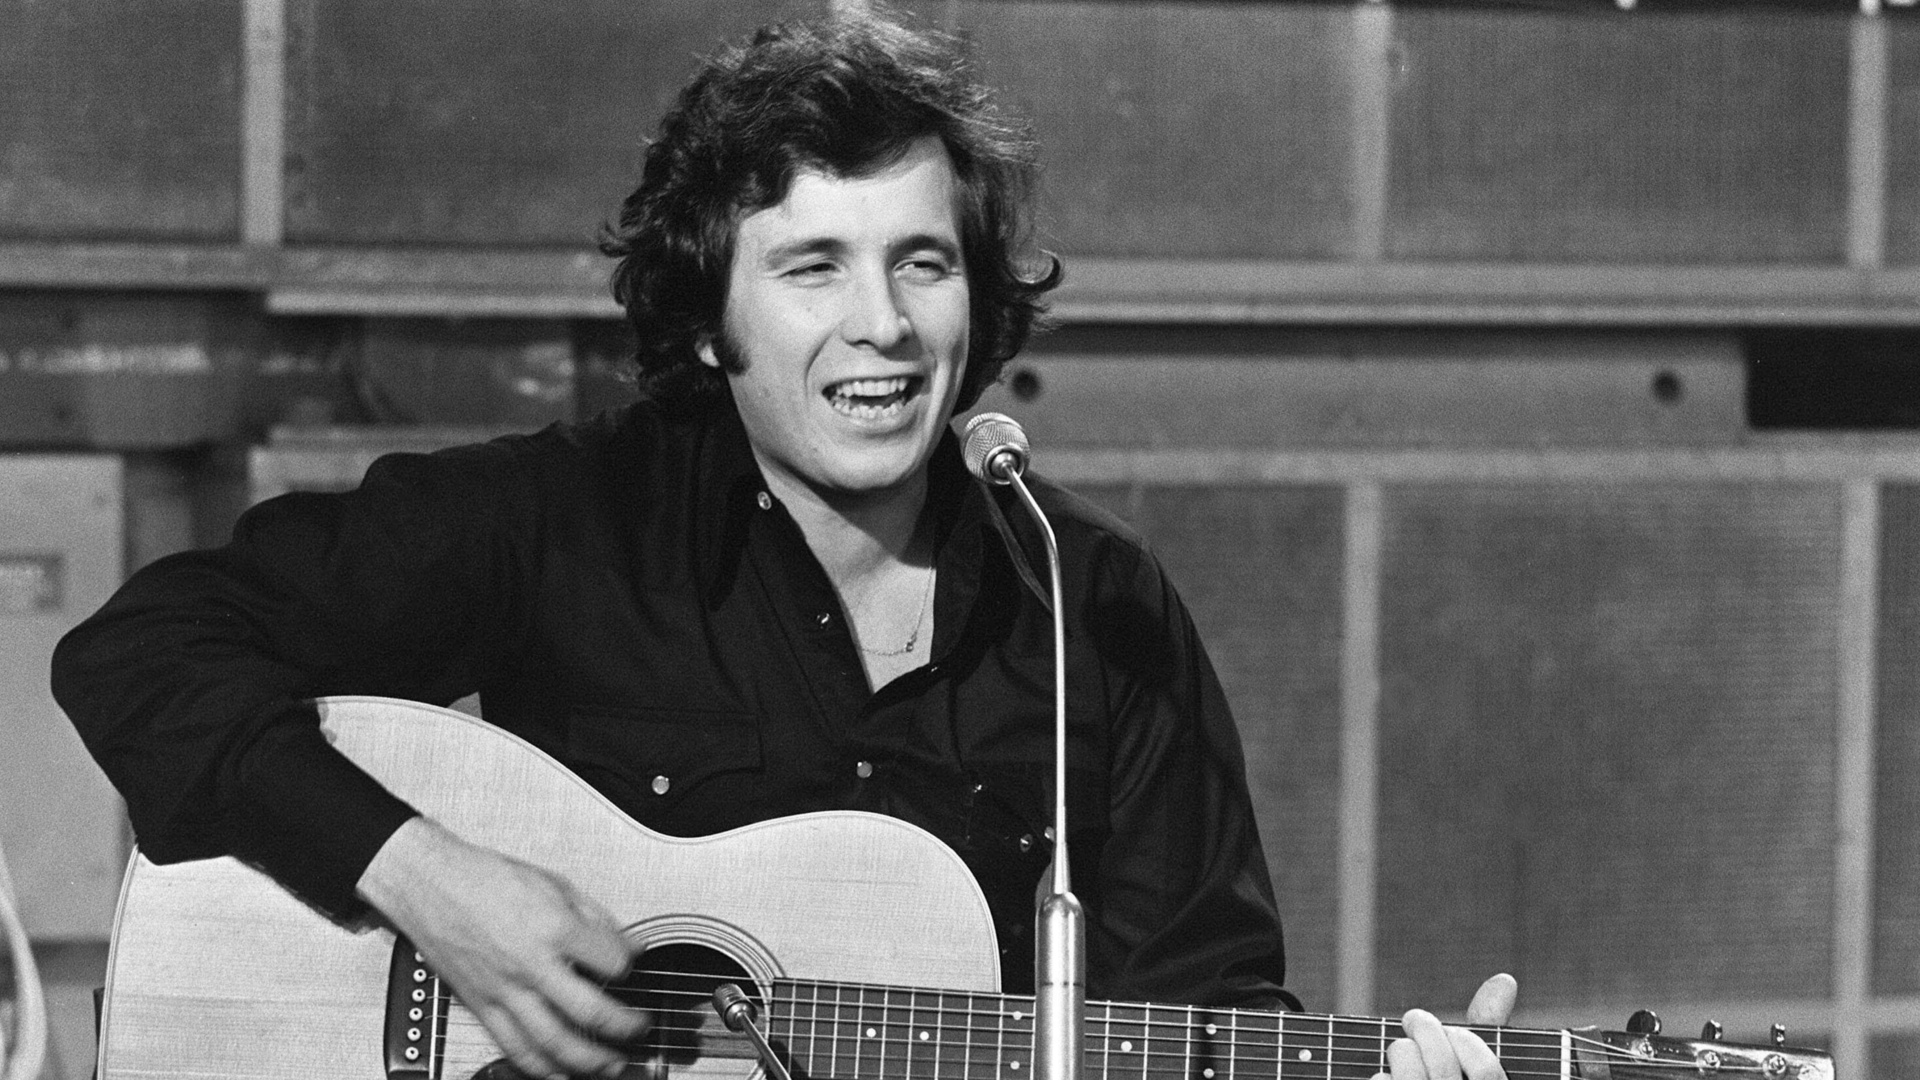 Don mclean intro